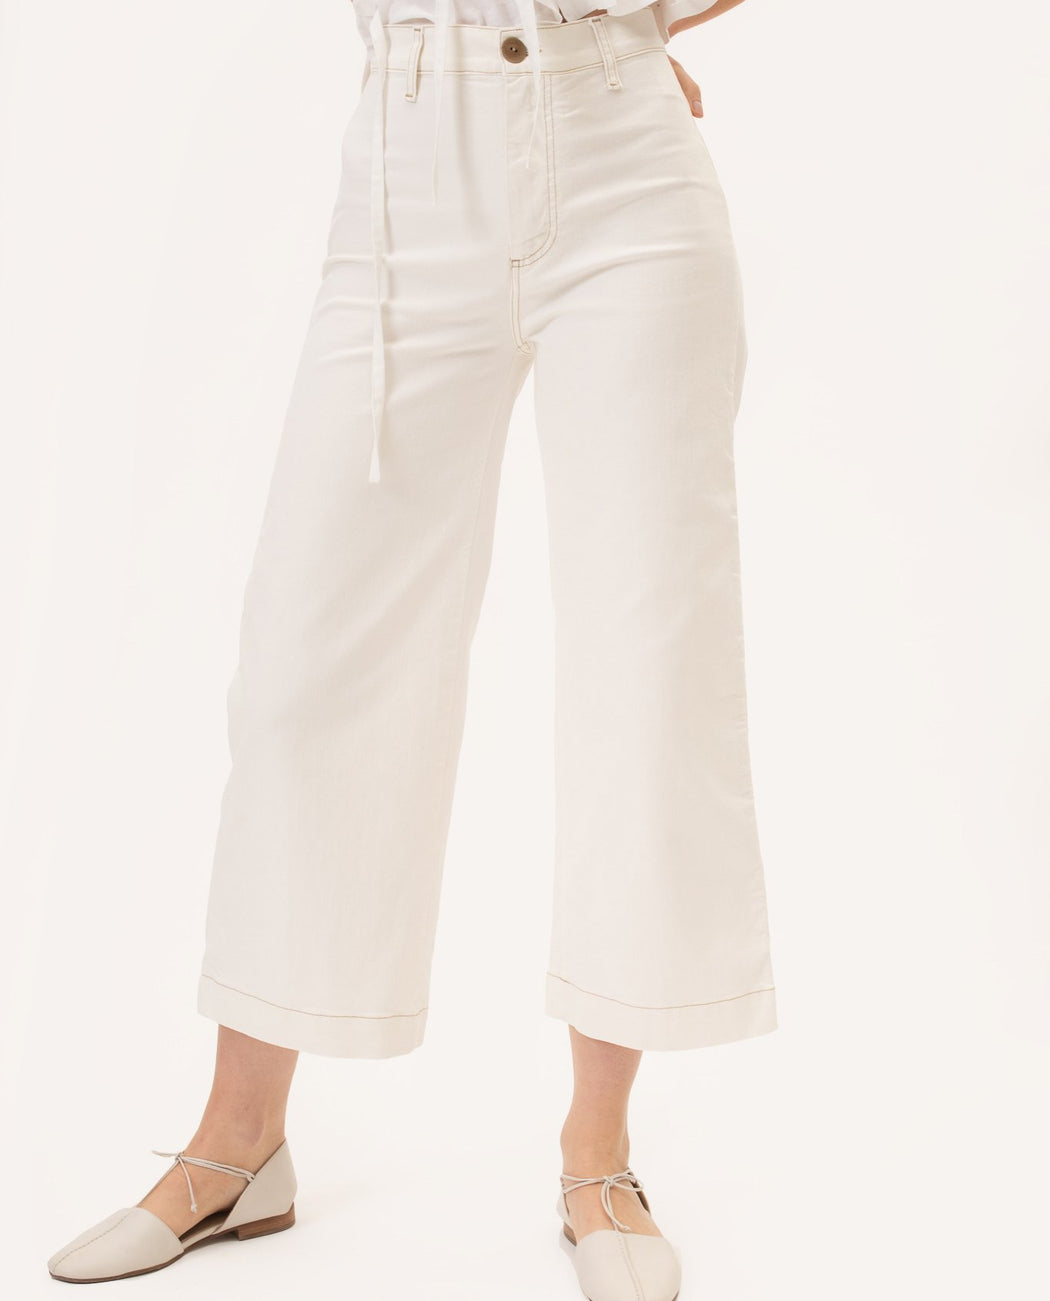 Mundaka Studio Utrecht Dora High Waisted Pants Nederland